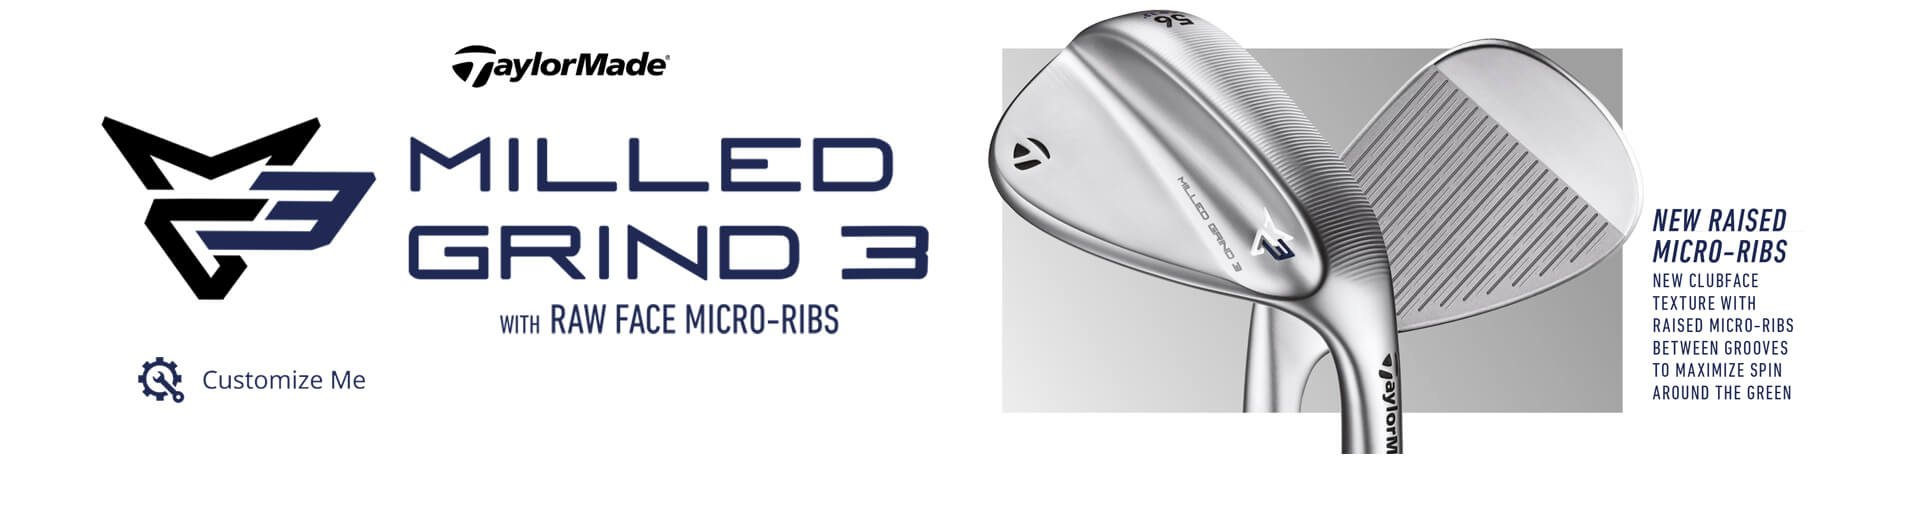 TaylorMade MG3 Wedges Milled Grind 3